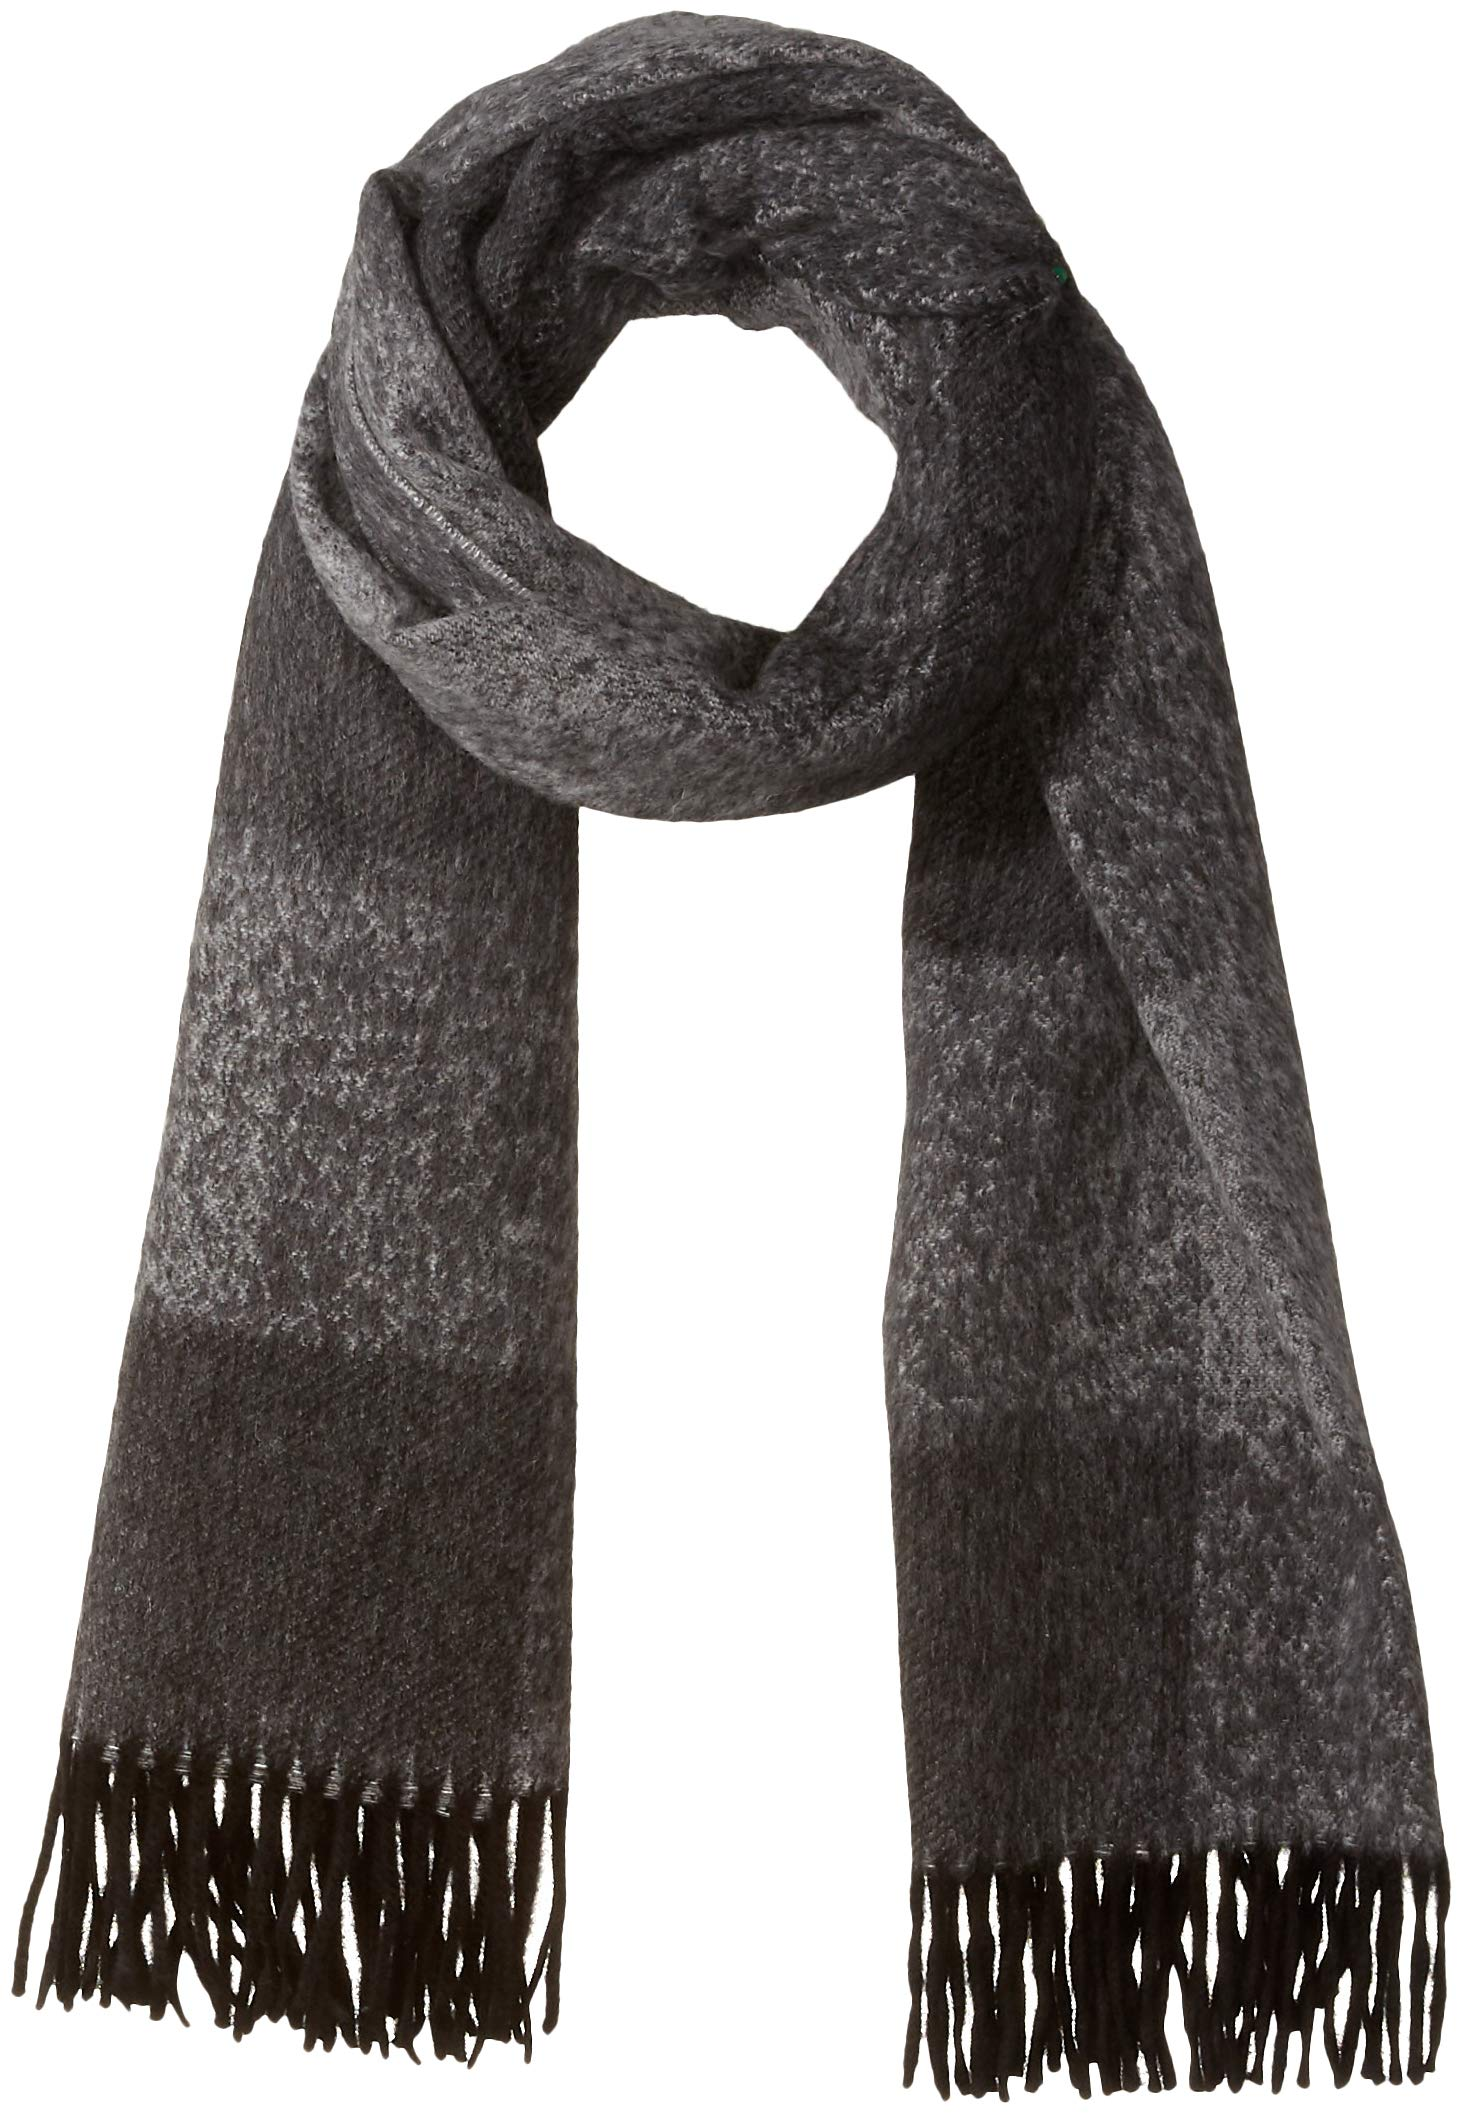 J.Lindeberg Men's Oversized Plaid Wool Scarf, JL Navy, One Size